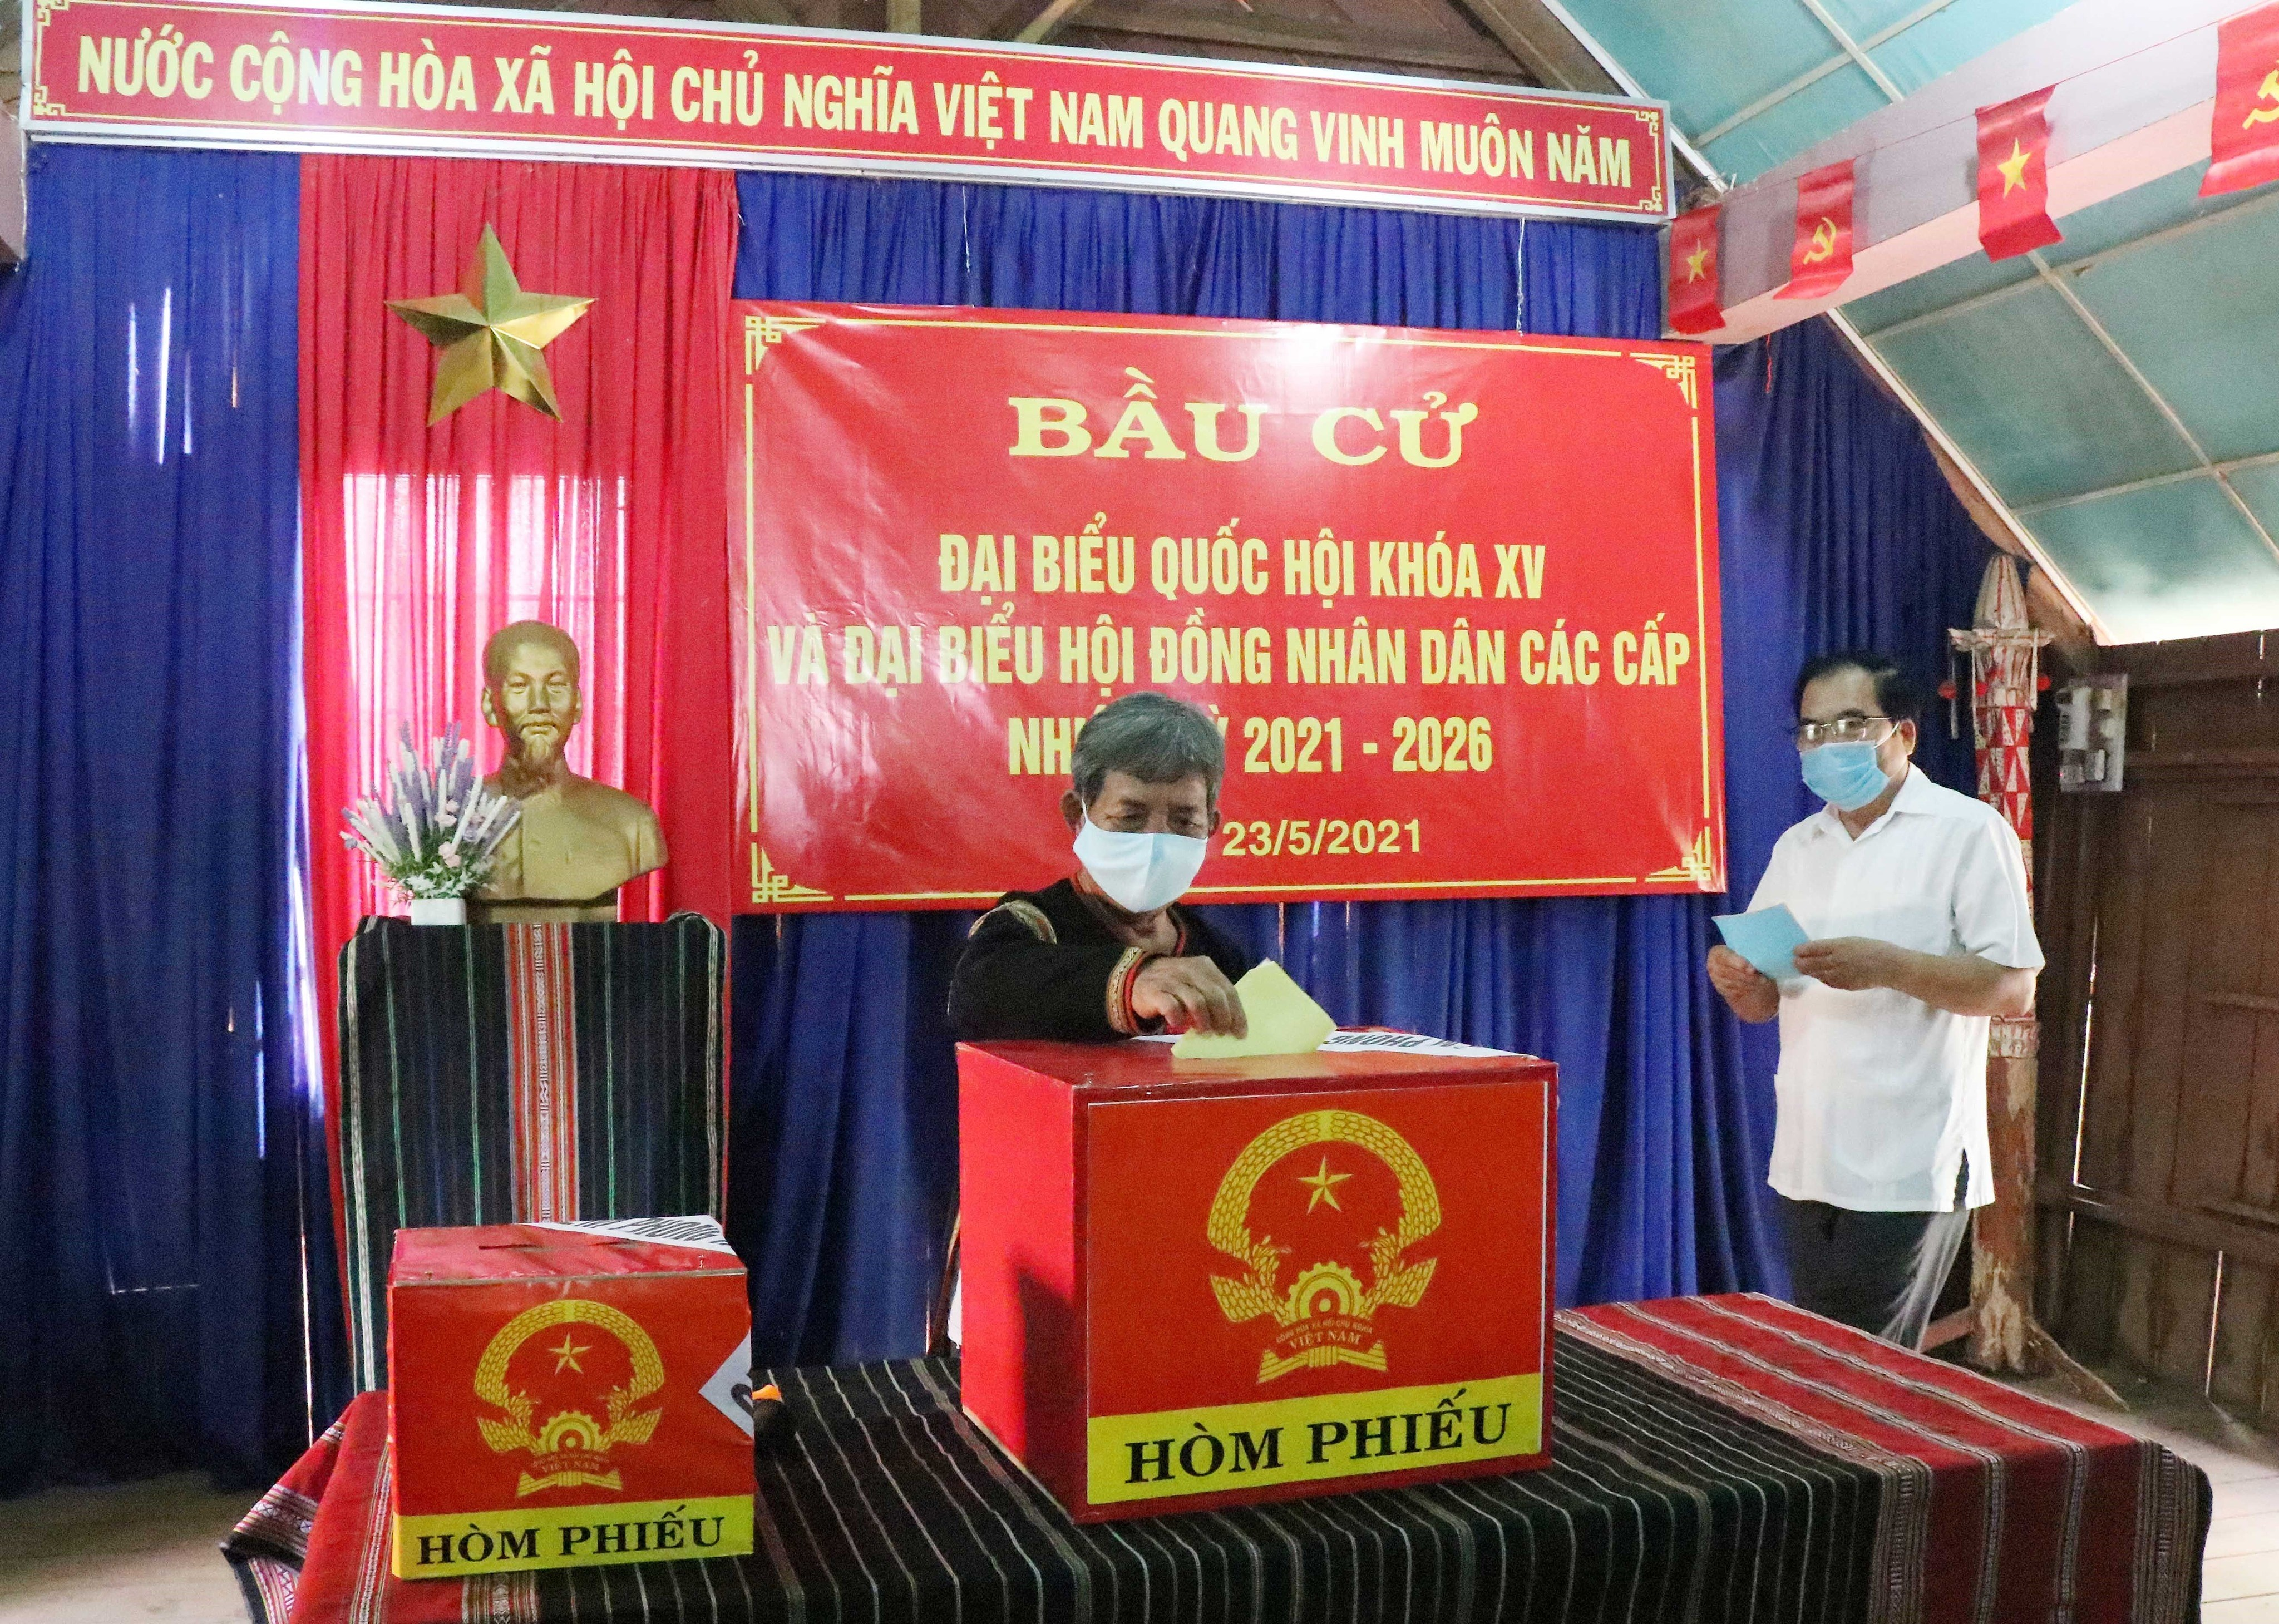 Voters nationwide cast ballots hinh anh 12